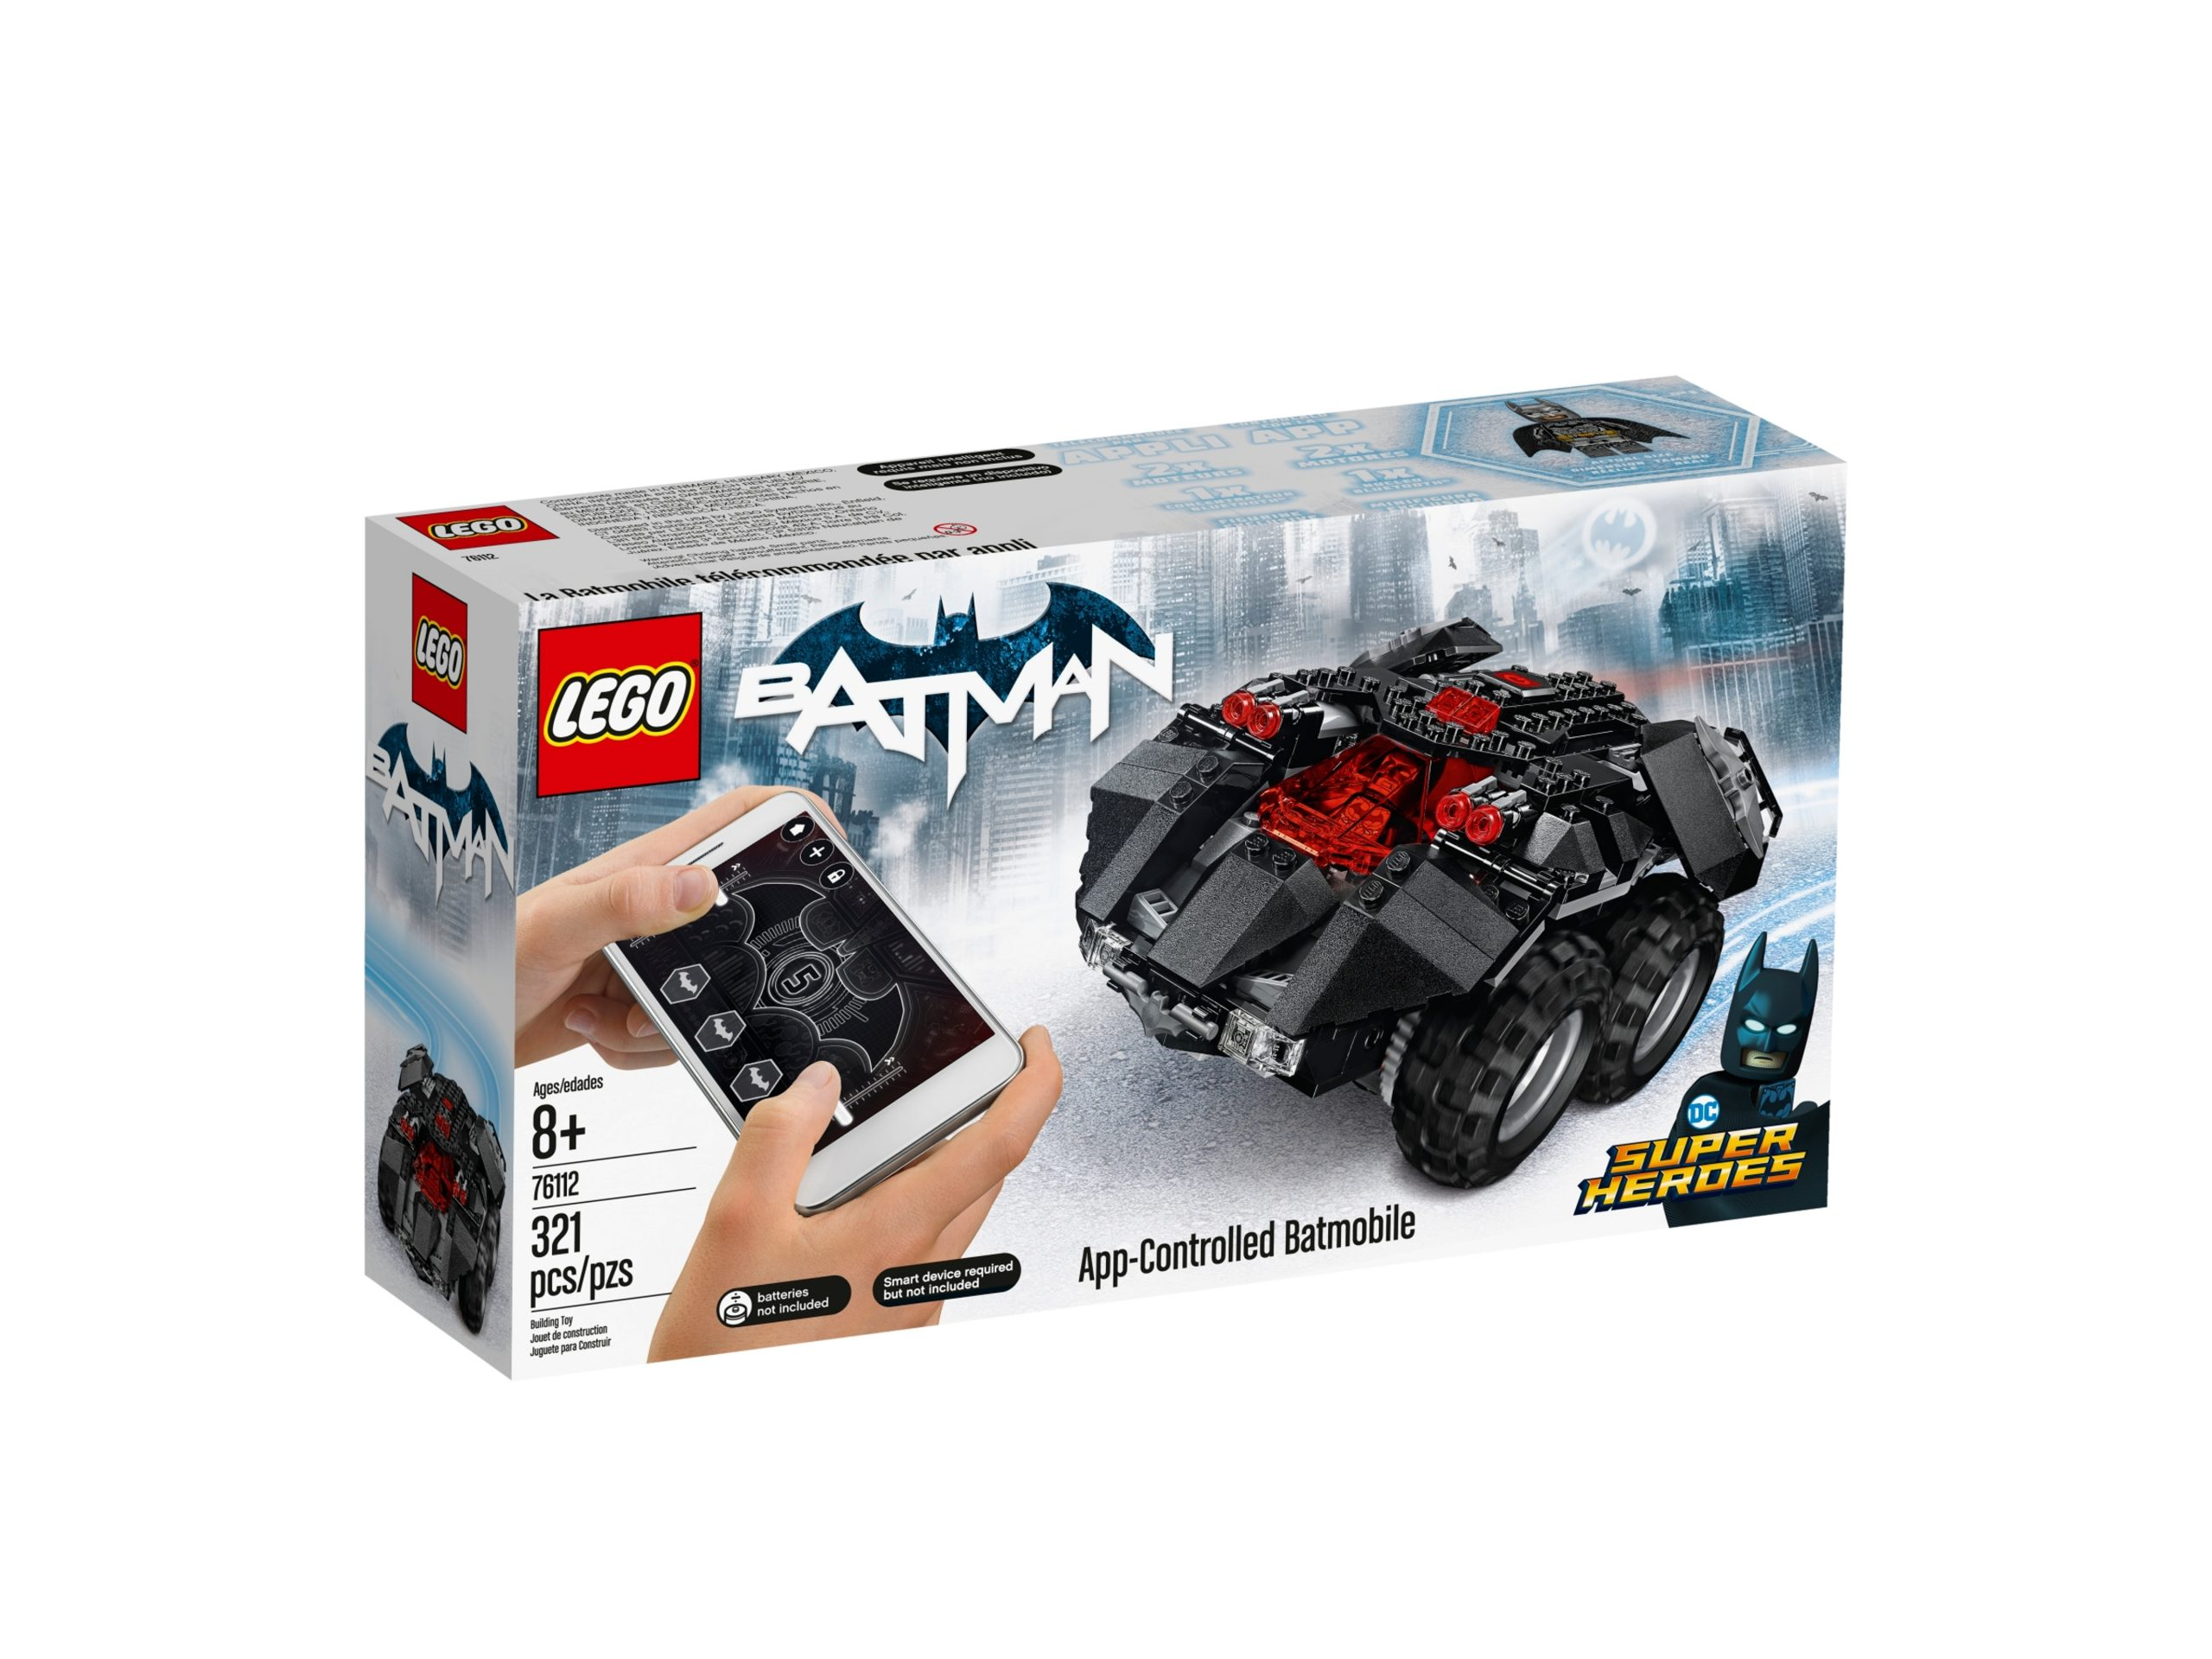 lego 76112 app controlled batmobile scaled